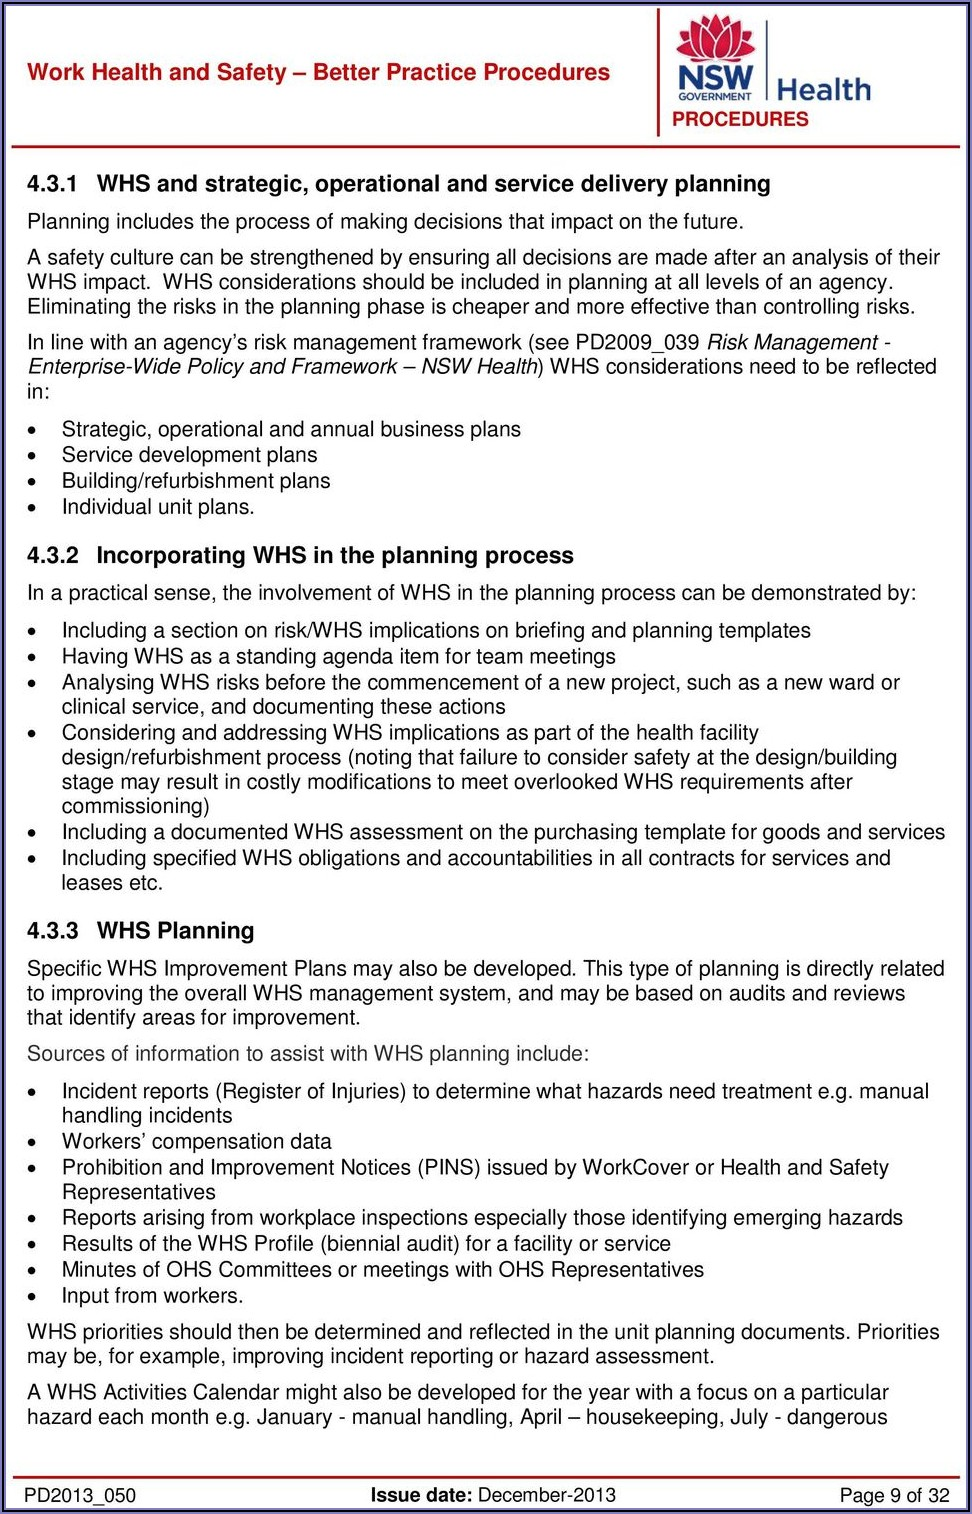 Work Health And Safety Policy Template Nsw